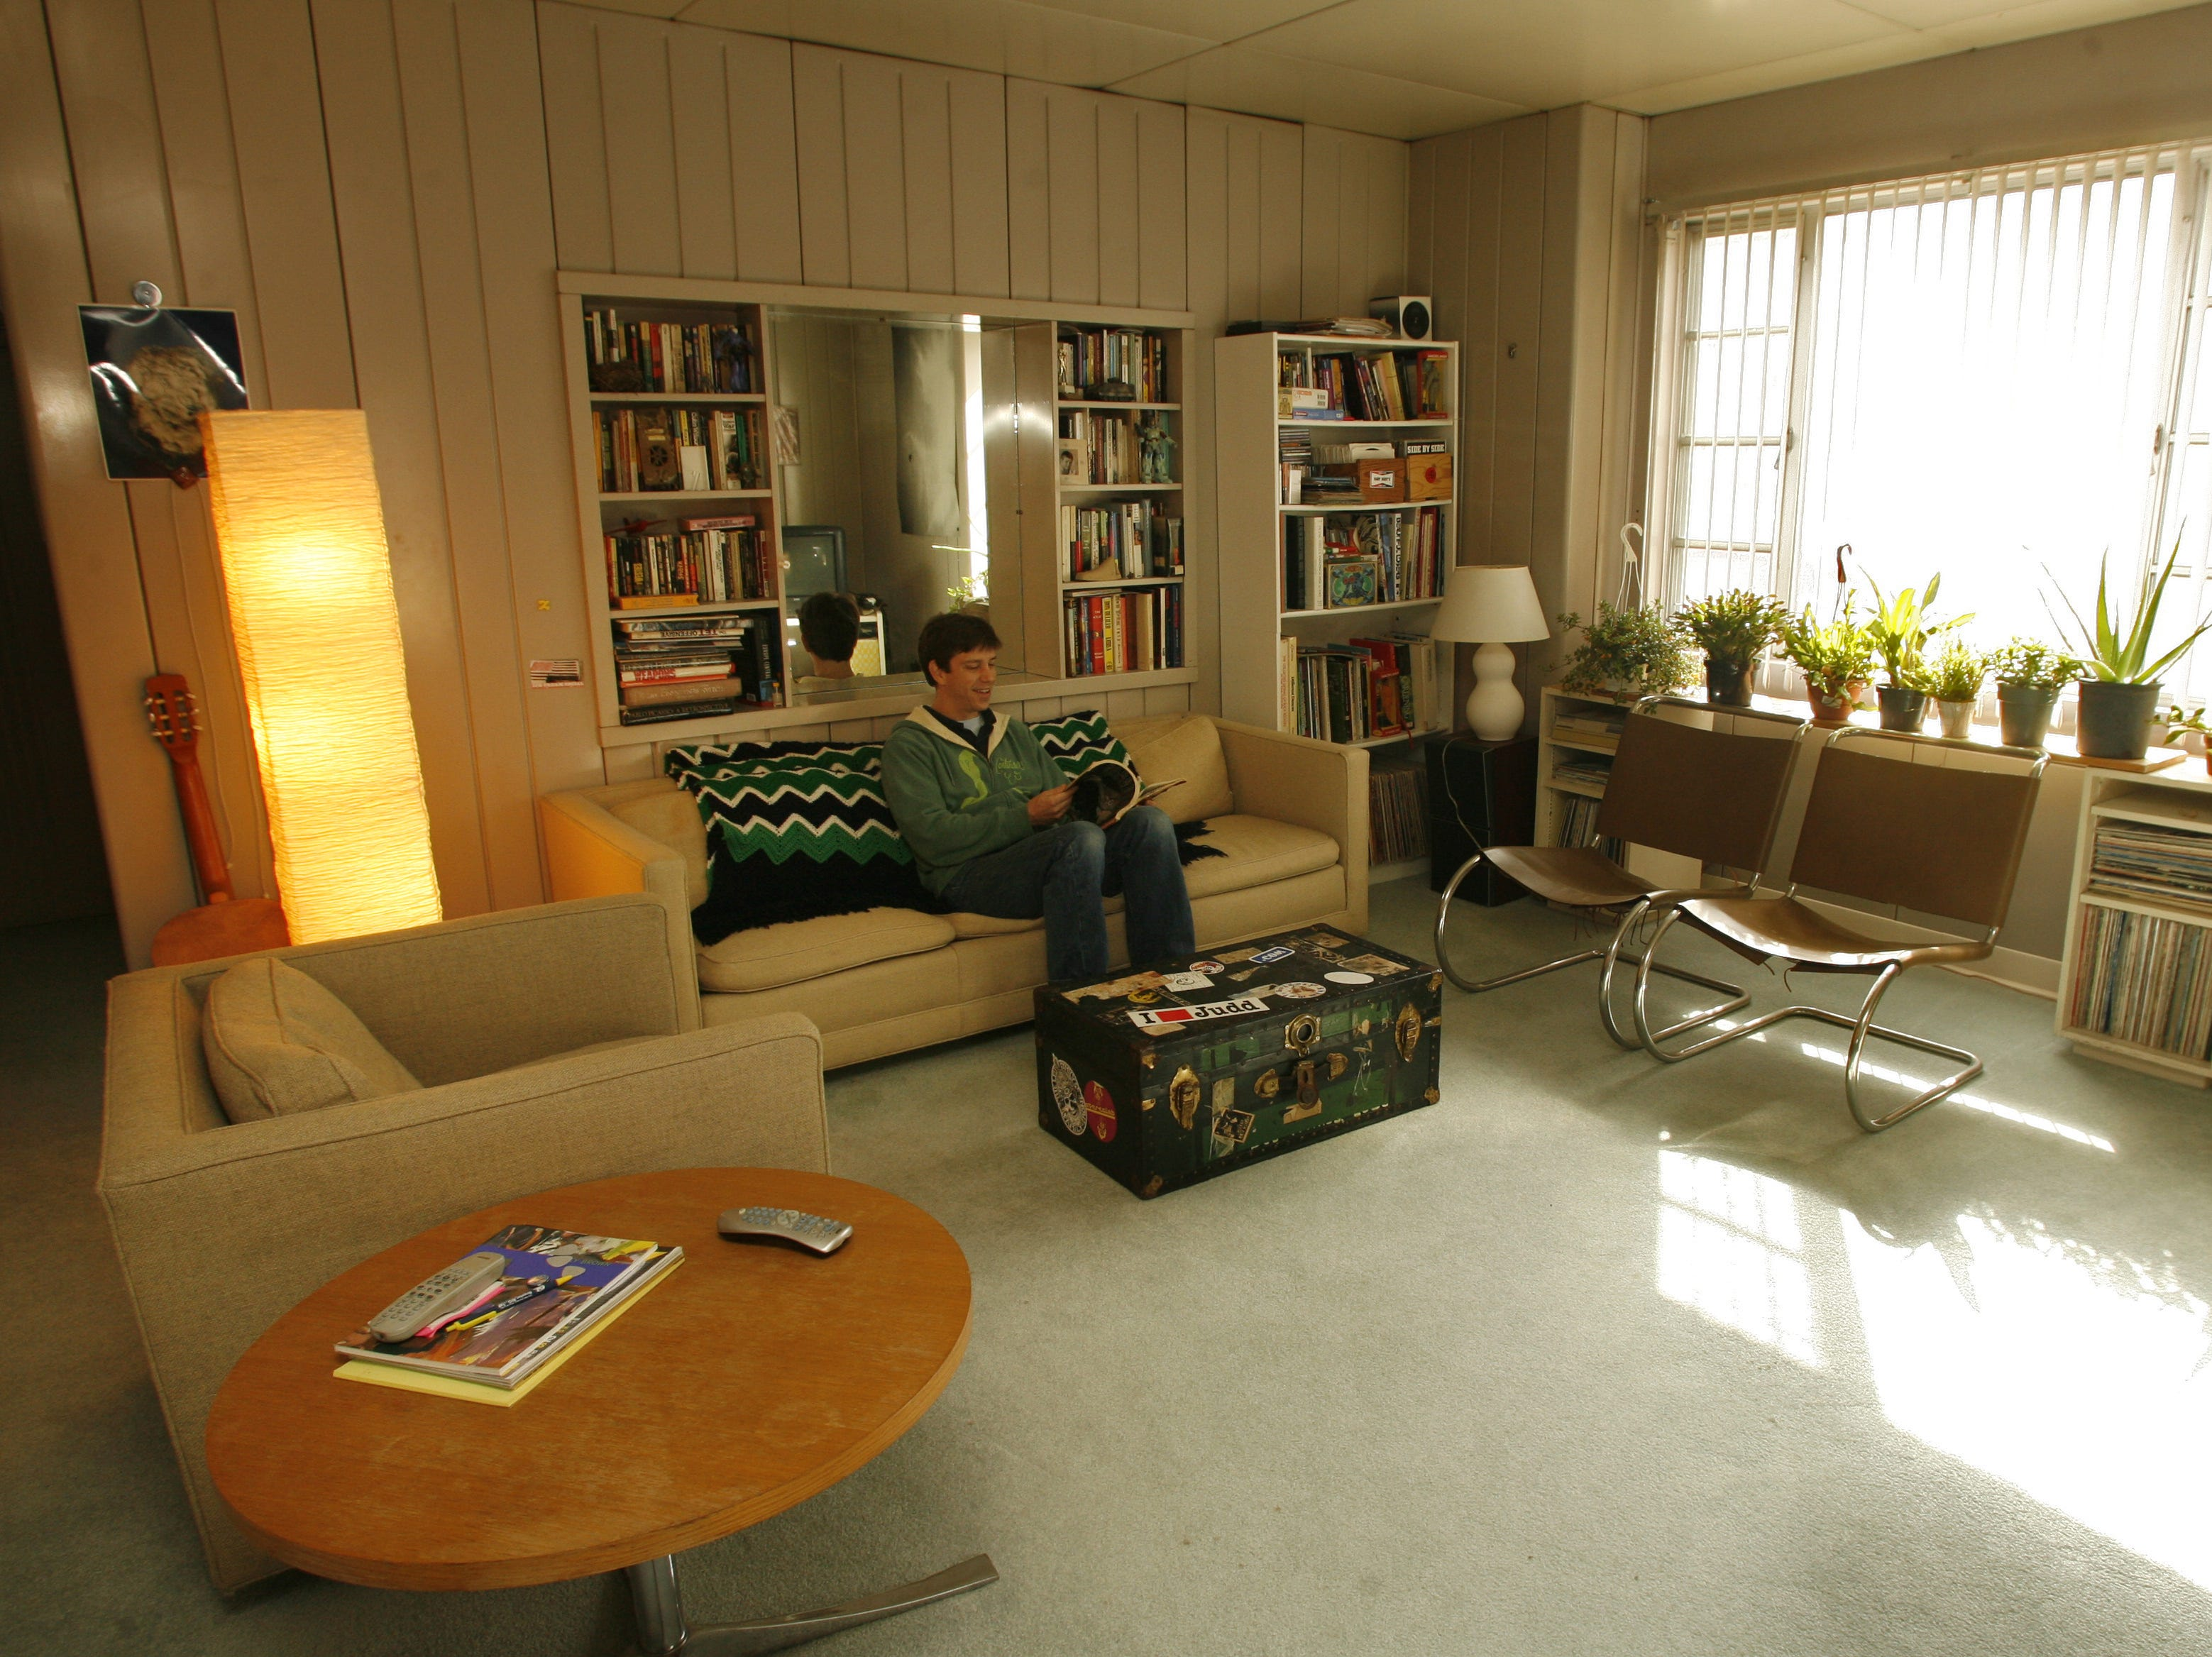 Alex Brown sits in the living room of his Lustron home in Des Moines in this 2006 file photo. Des Moines has the distinction of being one of the first cities in the nation where Lustron Corp.'s five-room all-metal houses were erected.